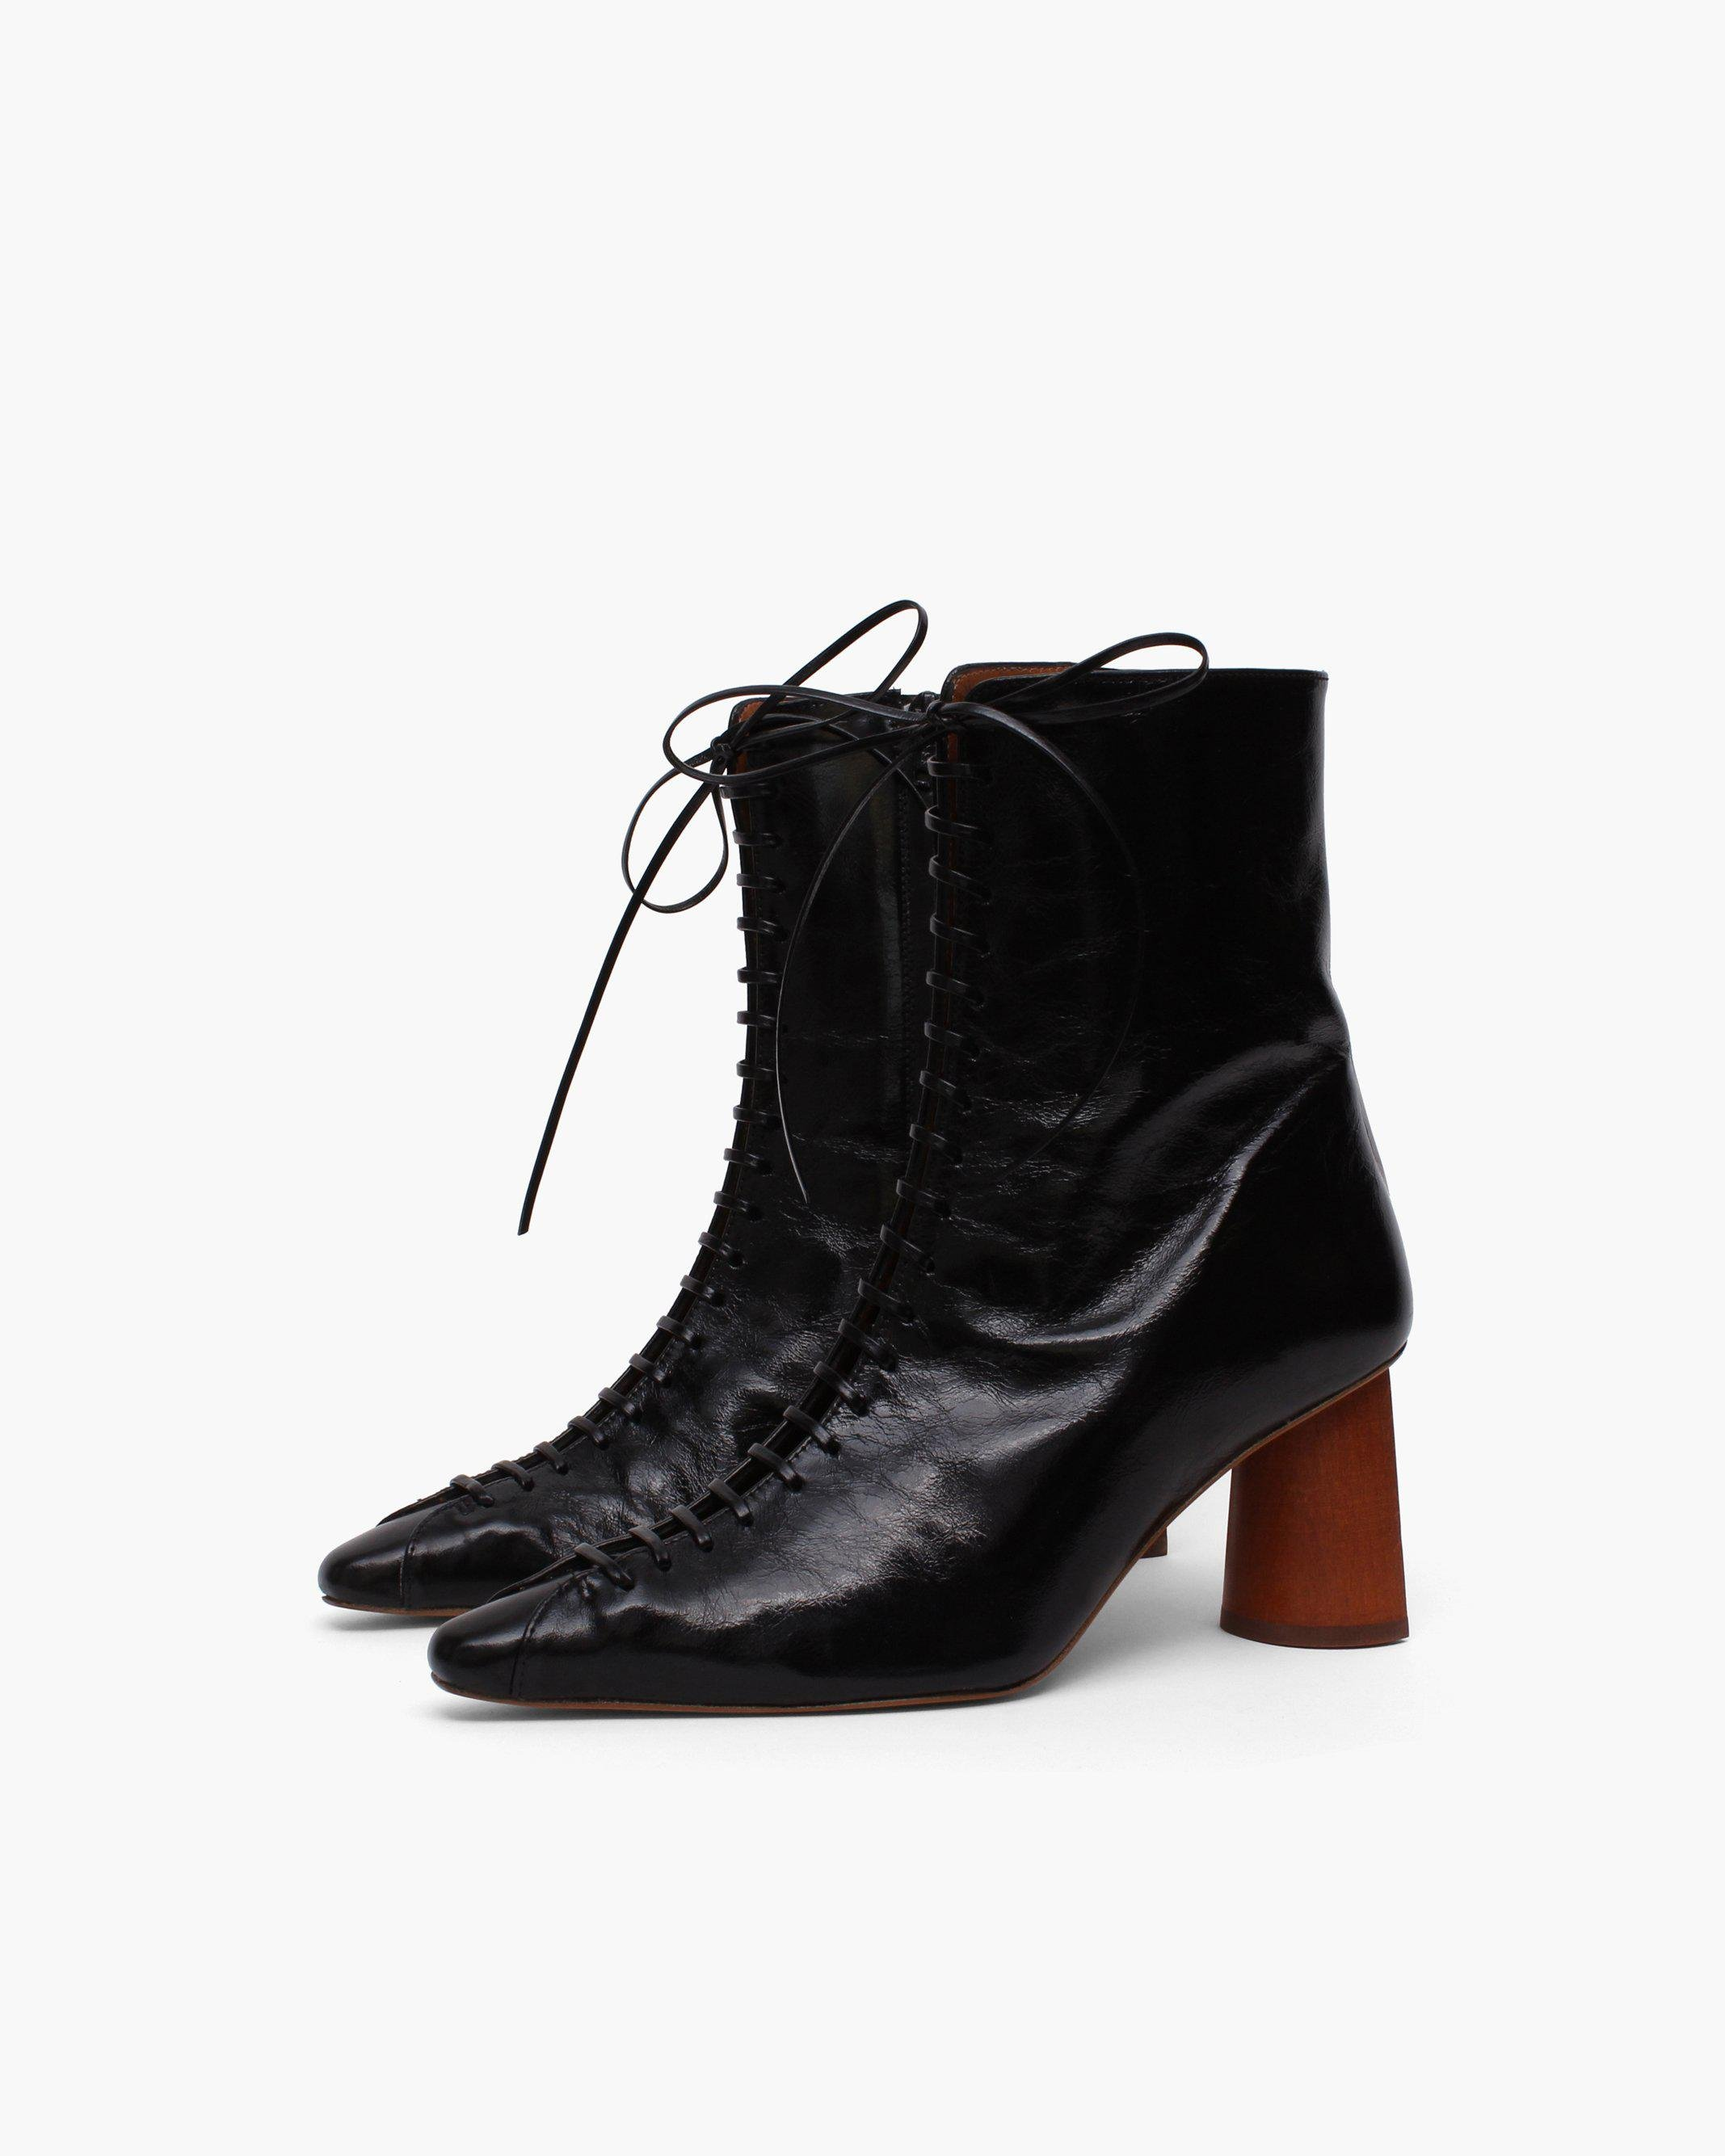 Peyton Boots Leather Patent Crinkle Black - SALE 1